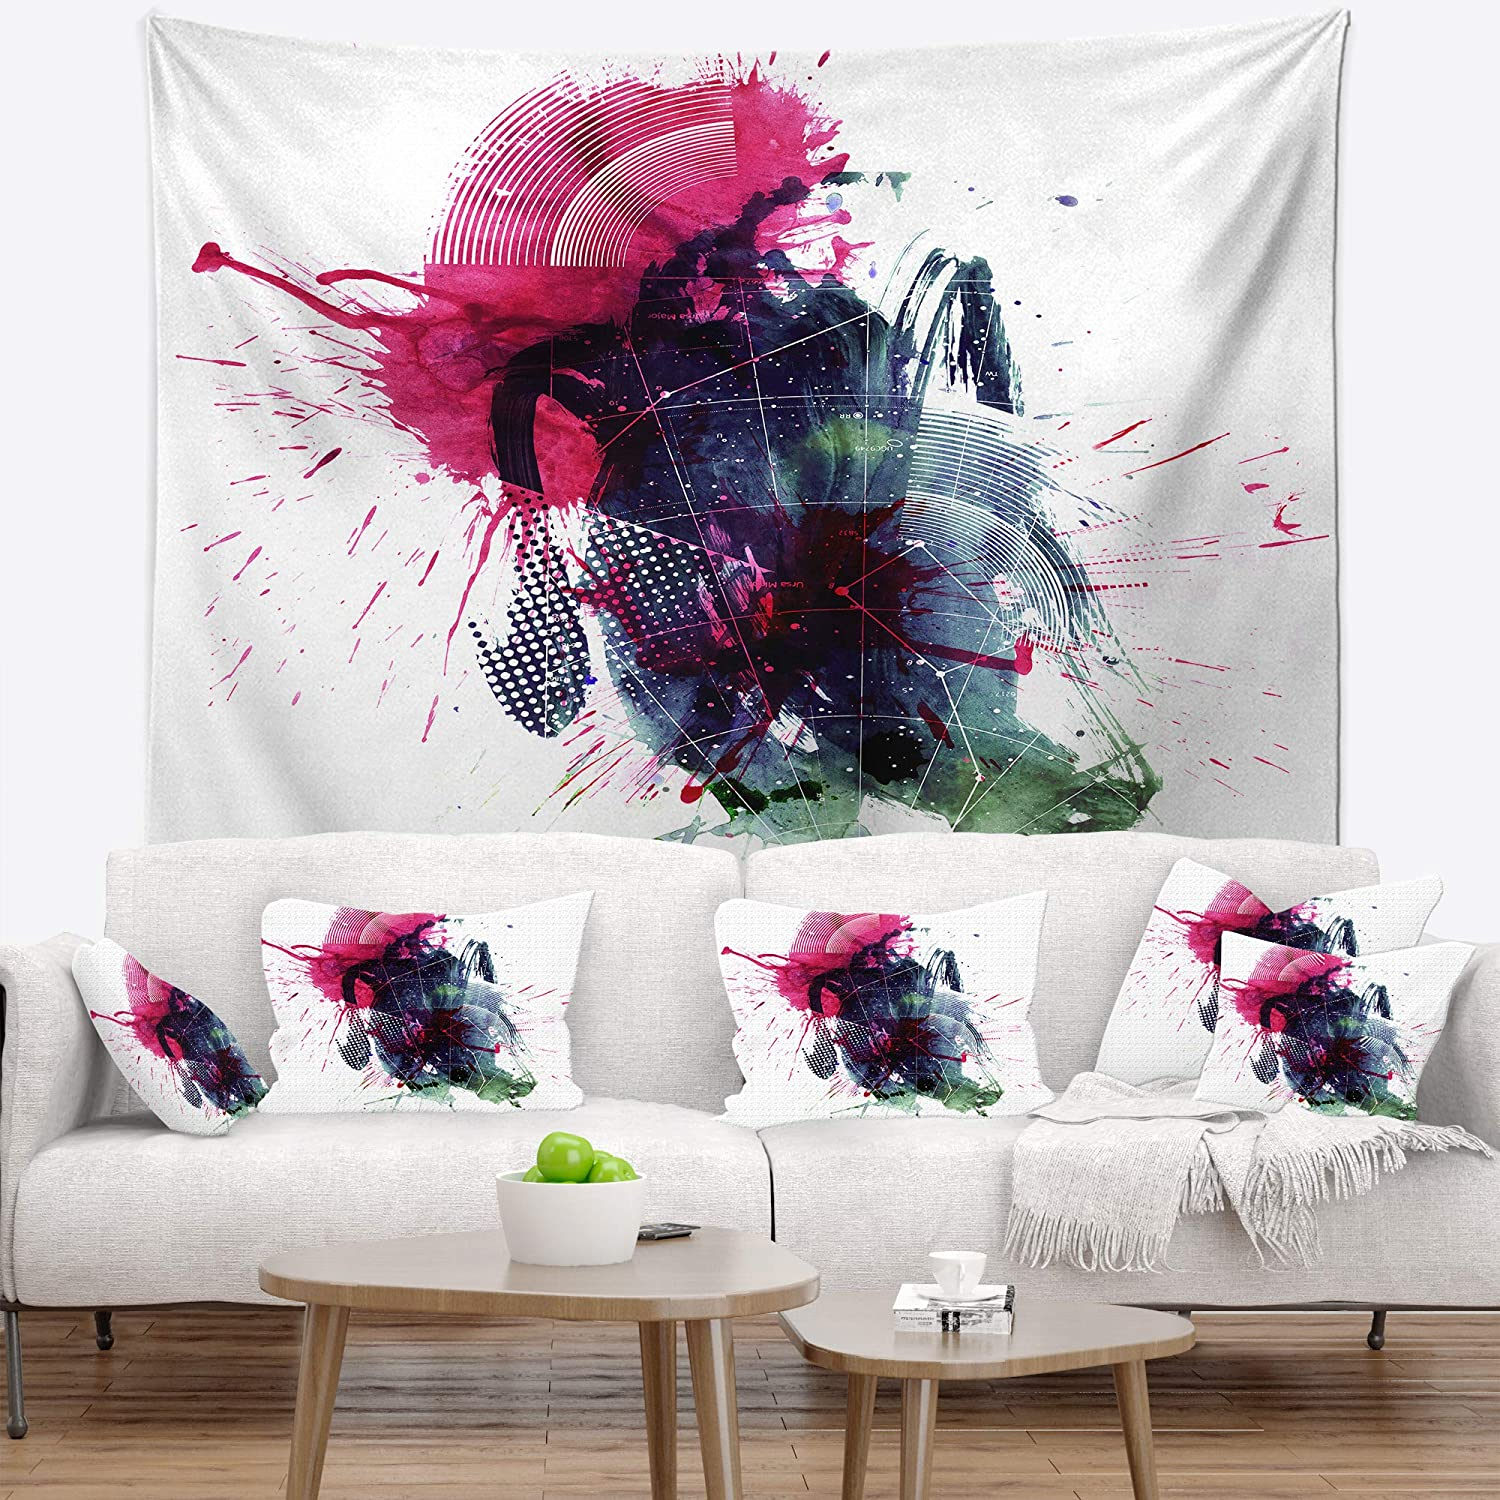 Medium: 39 in Created On Lightweight Polyester Fabric x 32 in Designart TAP7478-39-32 Multicolor Stain Abstract Blanket D/écor Art for Home and Office Wall Tapestry